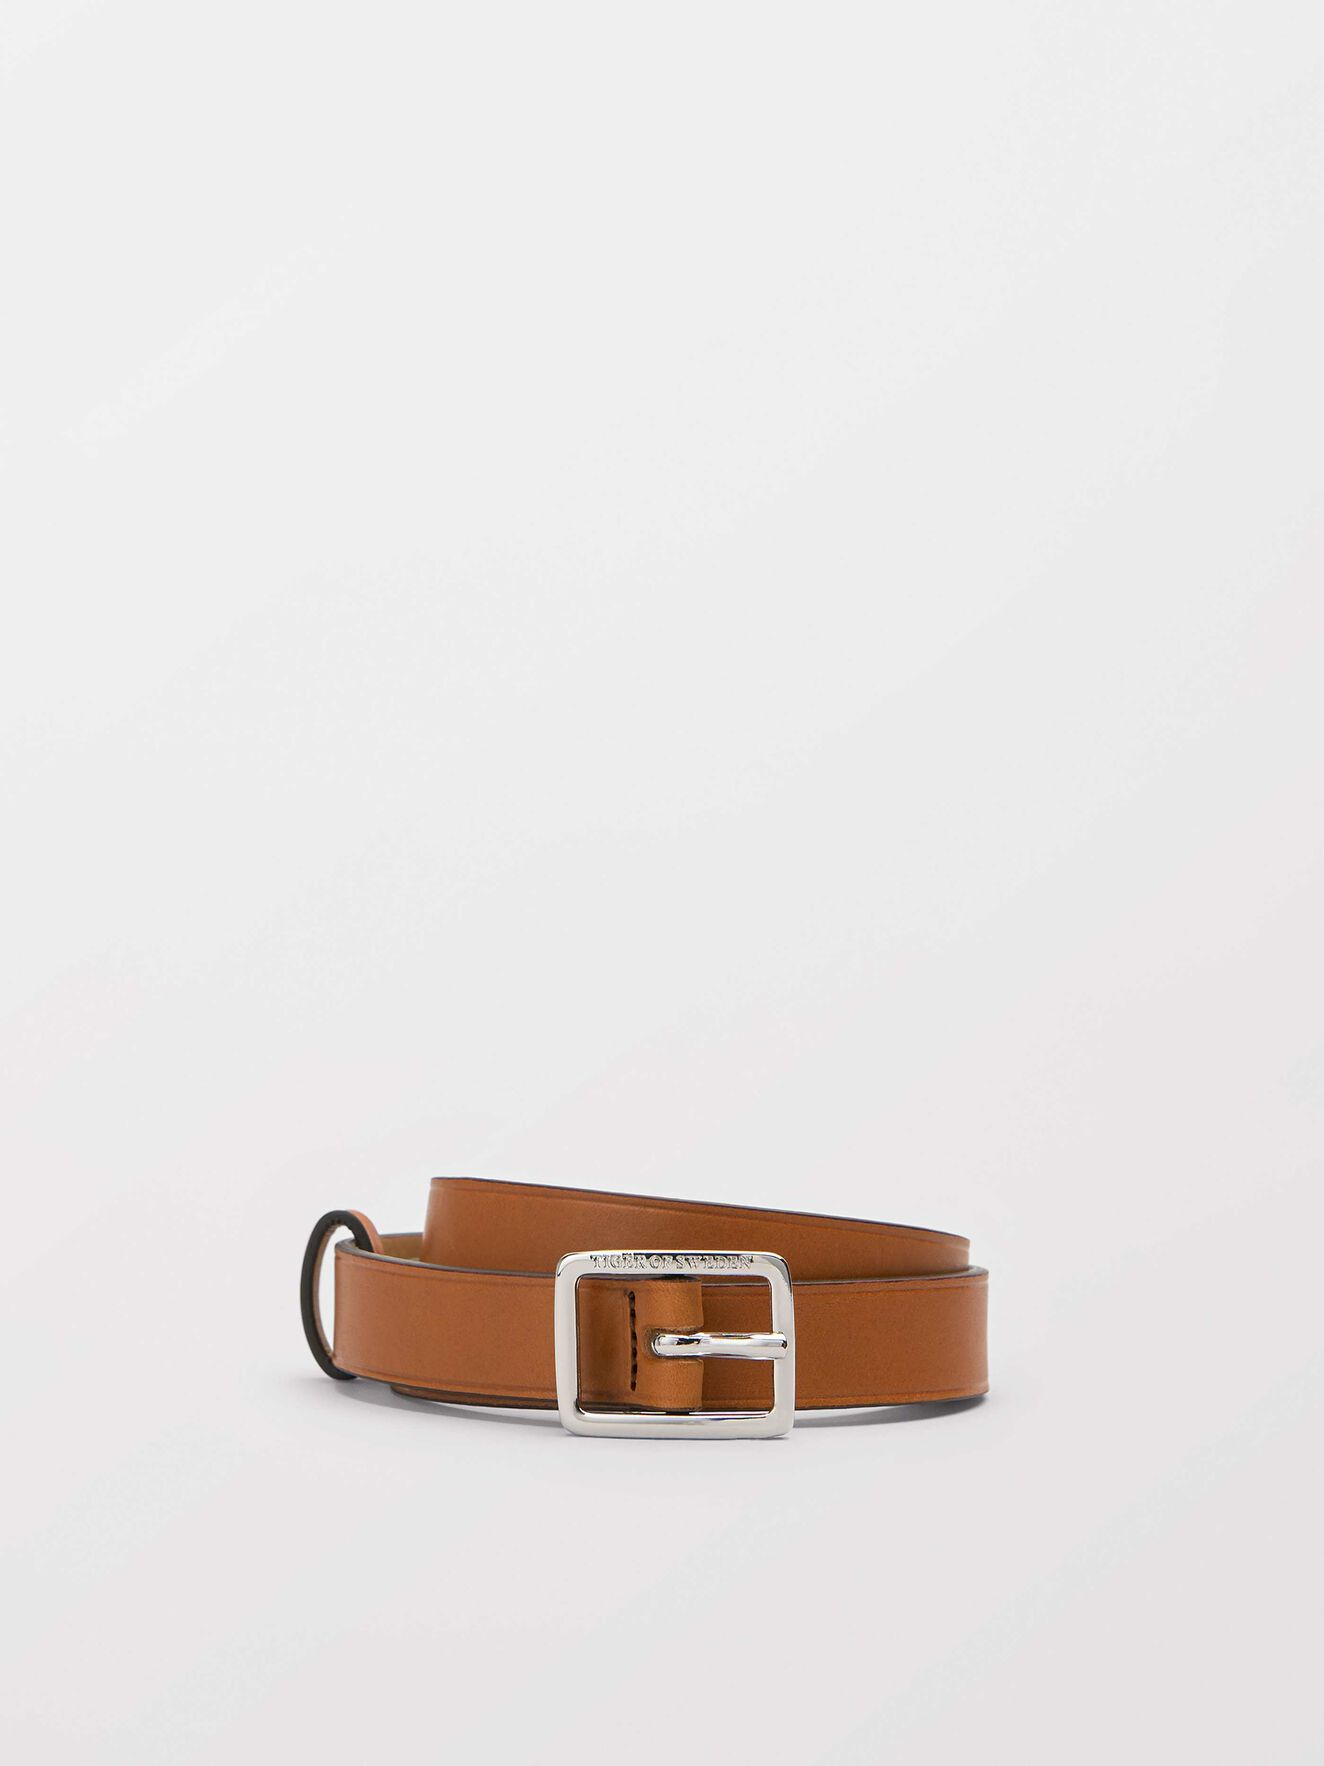 Looe Belt in Cognac from Tiger of Sweden